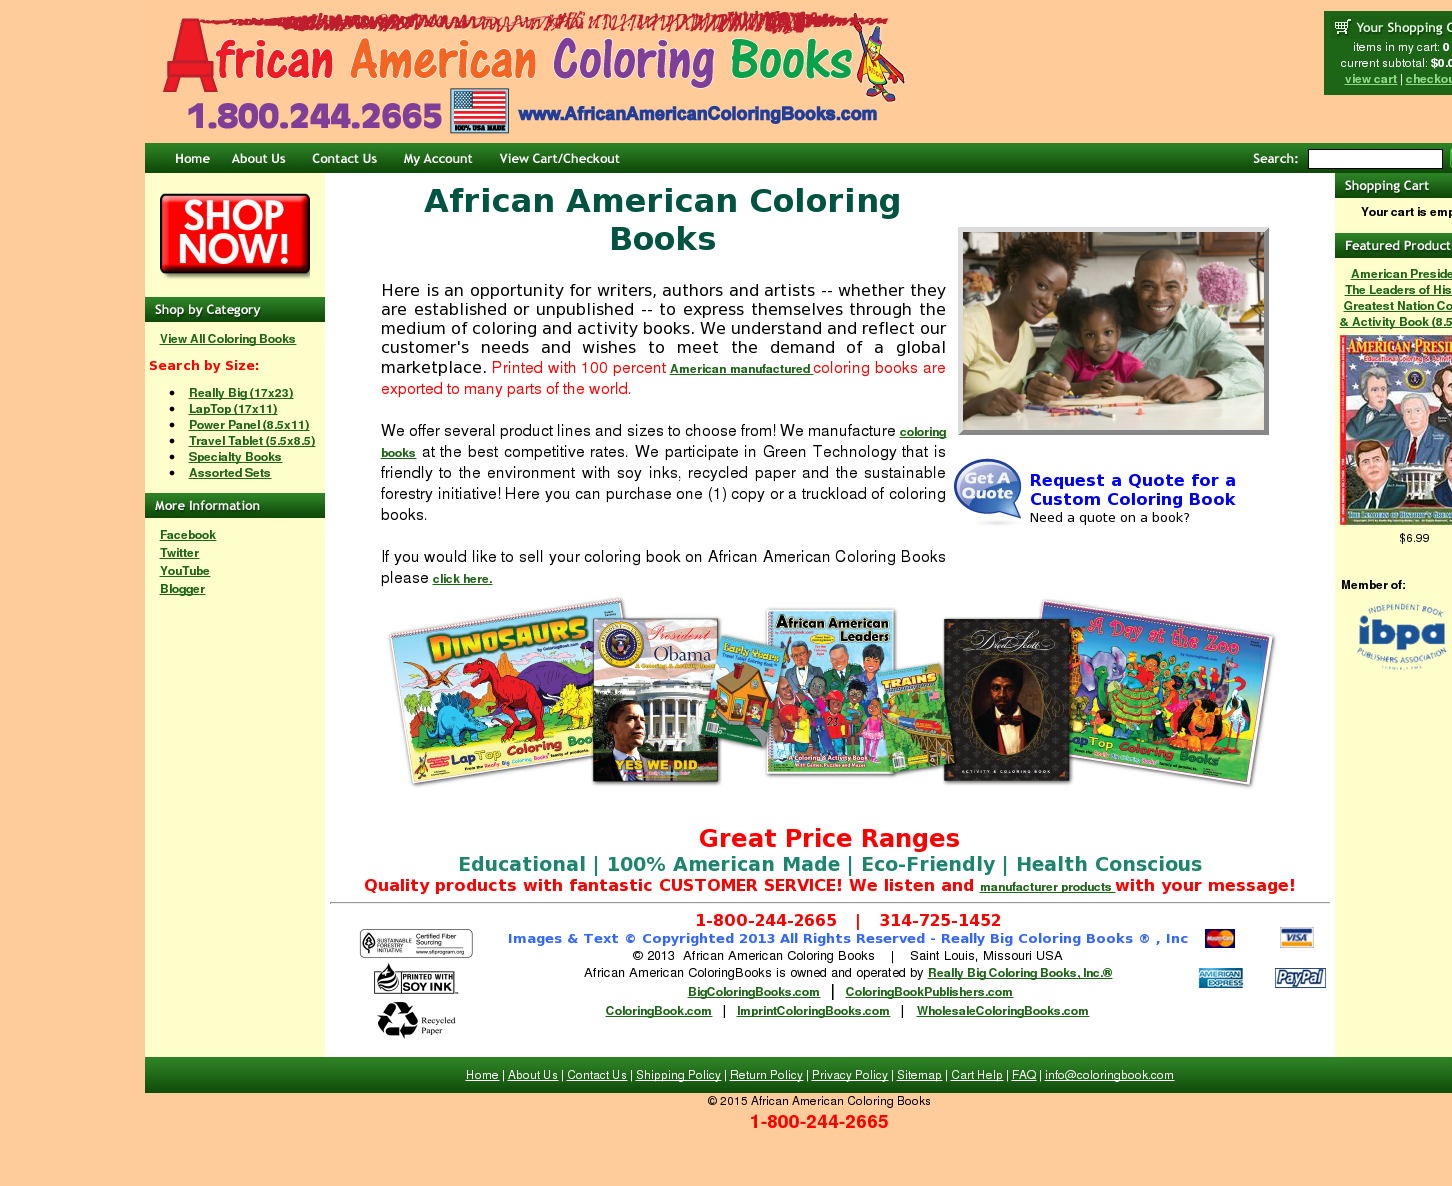 African American Coloring Books Competitors, Revenue and ...